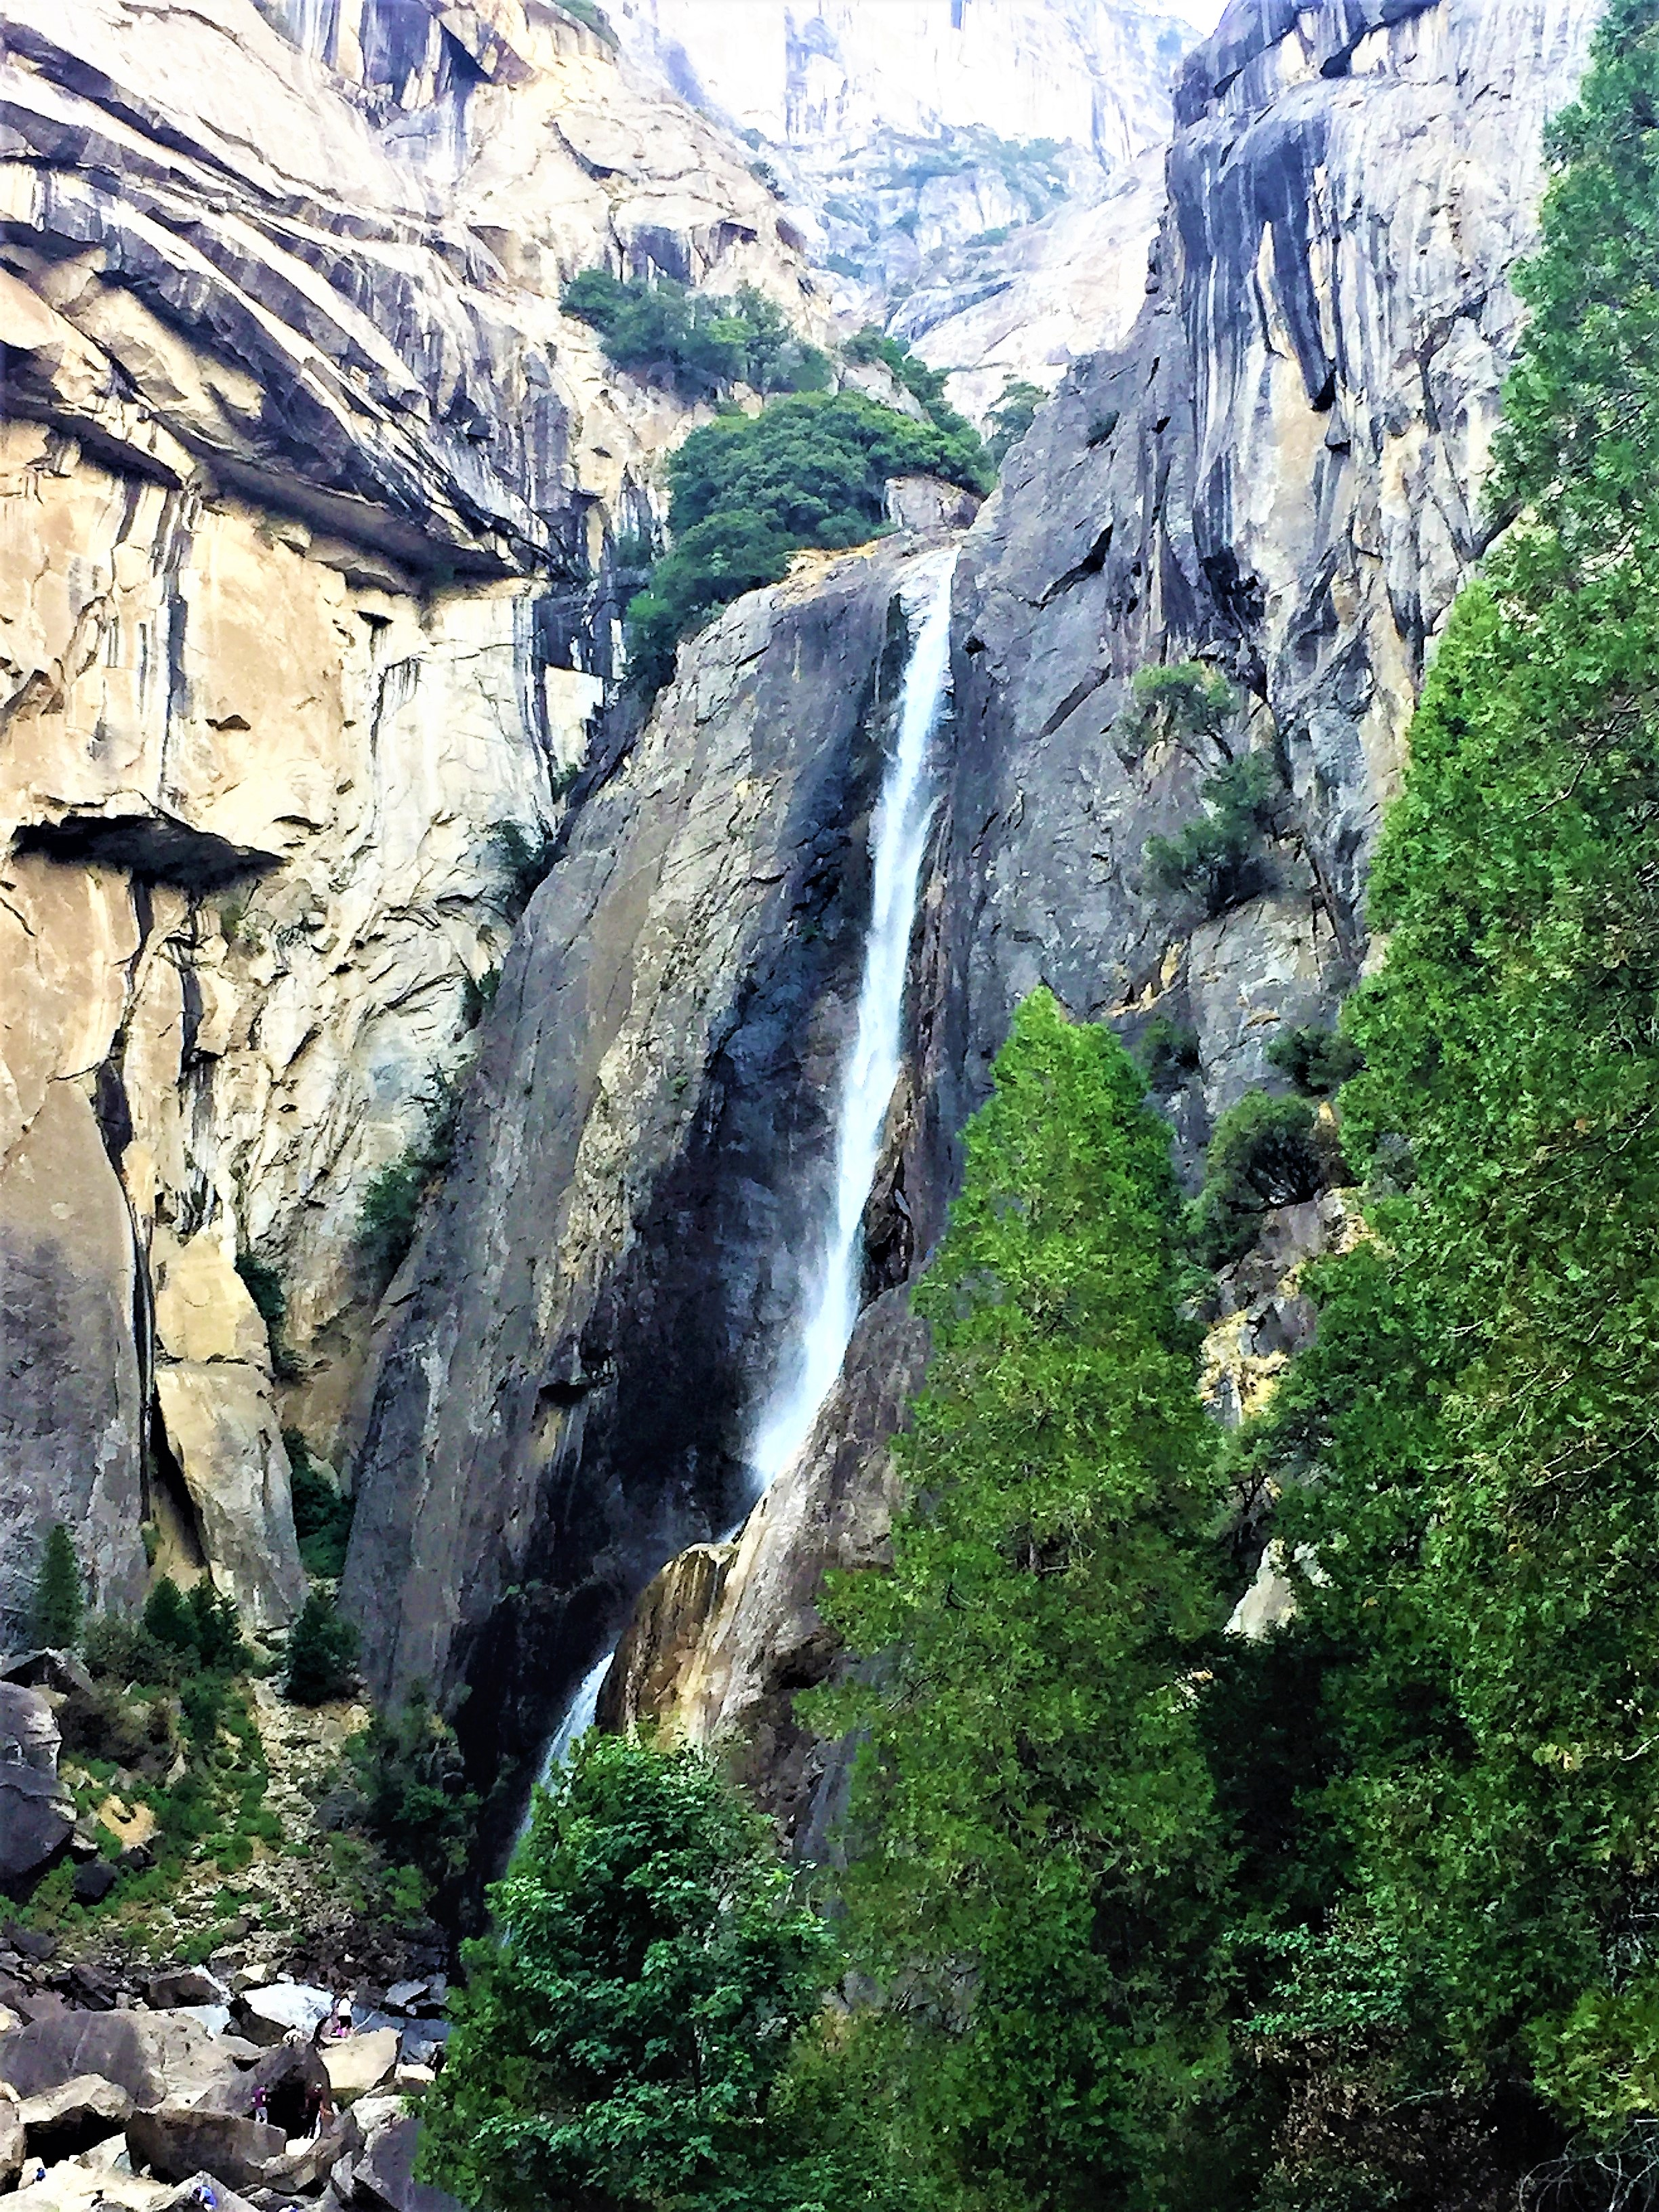 Yosemite Fall, Yosemite NP